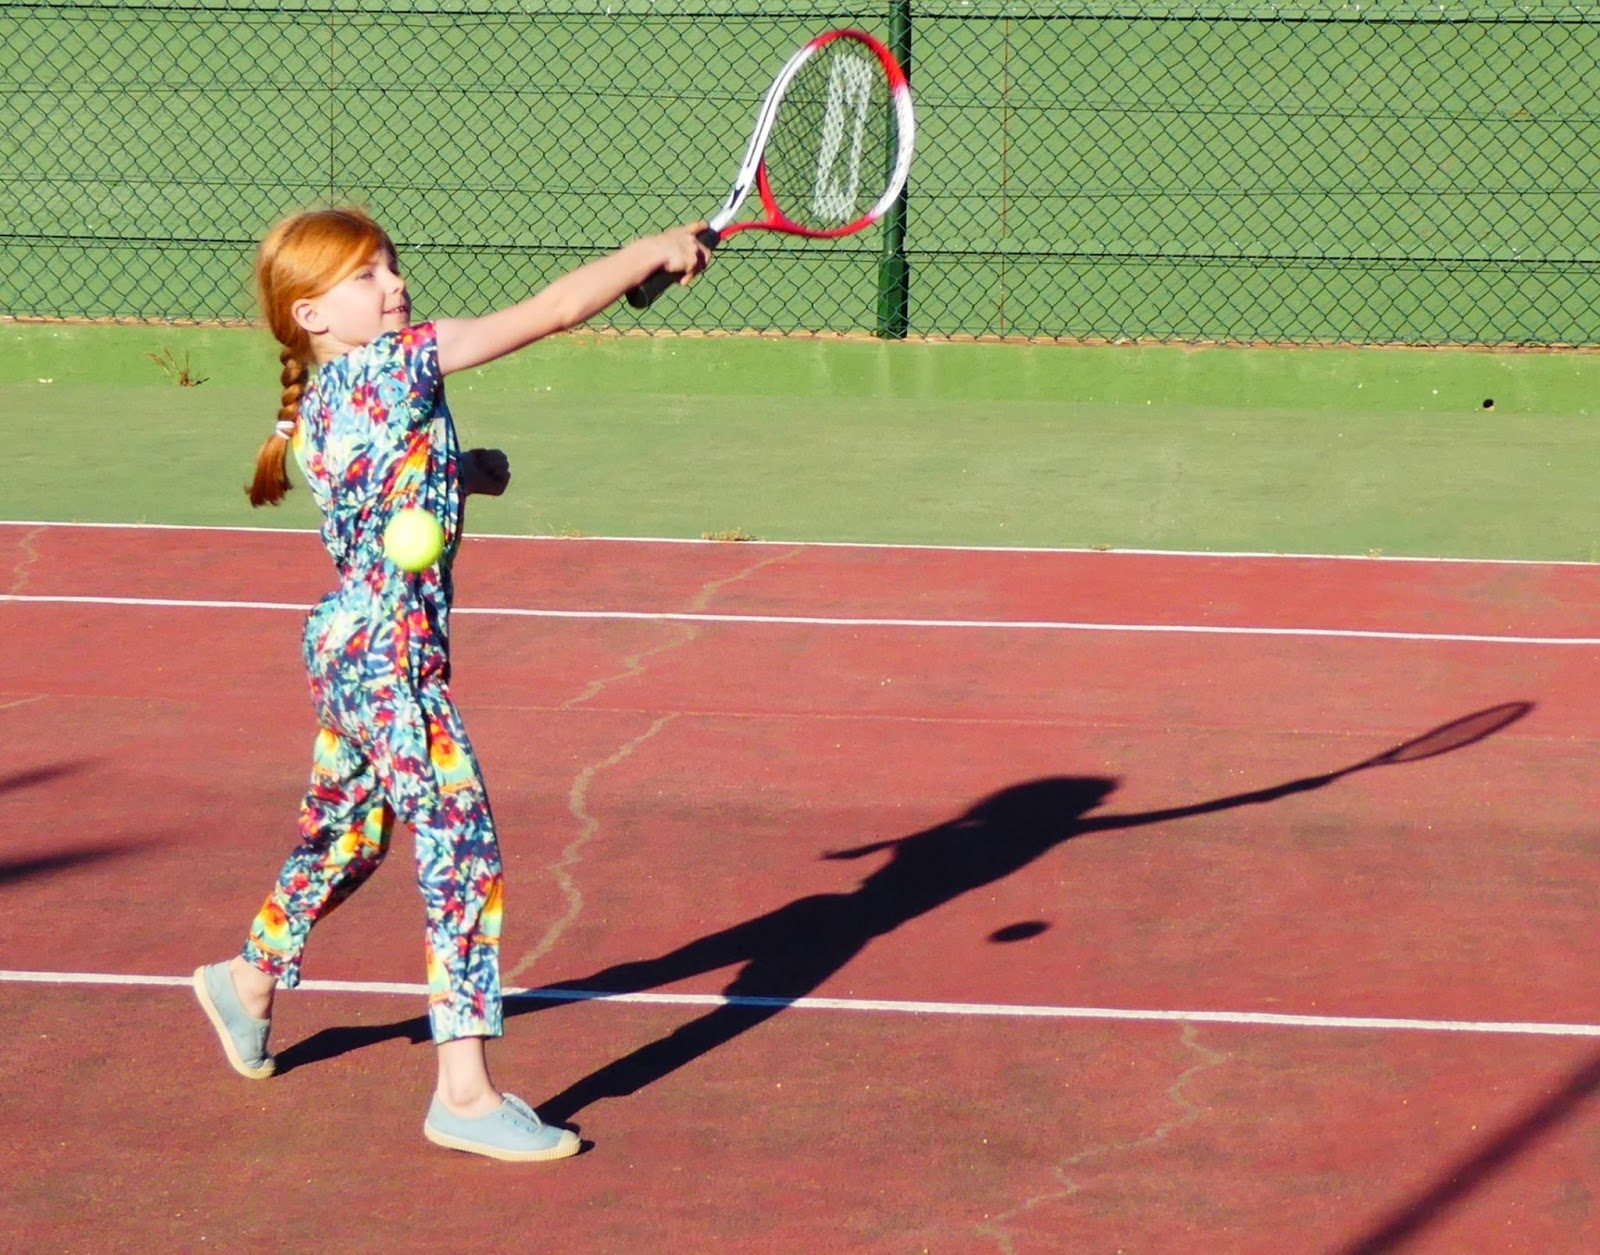 How to access free tennis sessions for kids across the North East this summer with LTA and #TennisForKids - girl on tennis court